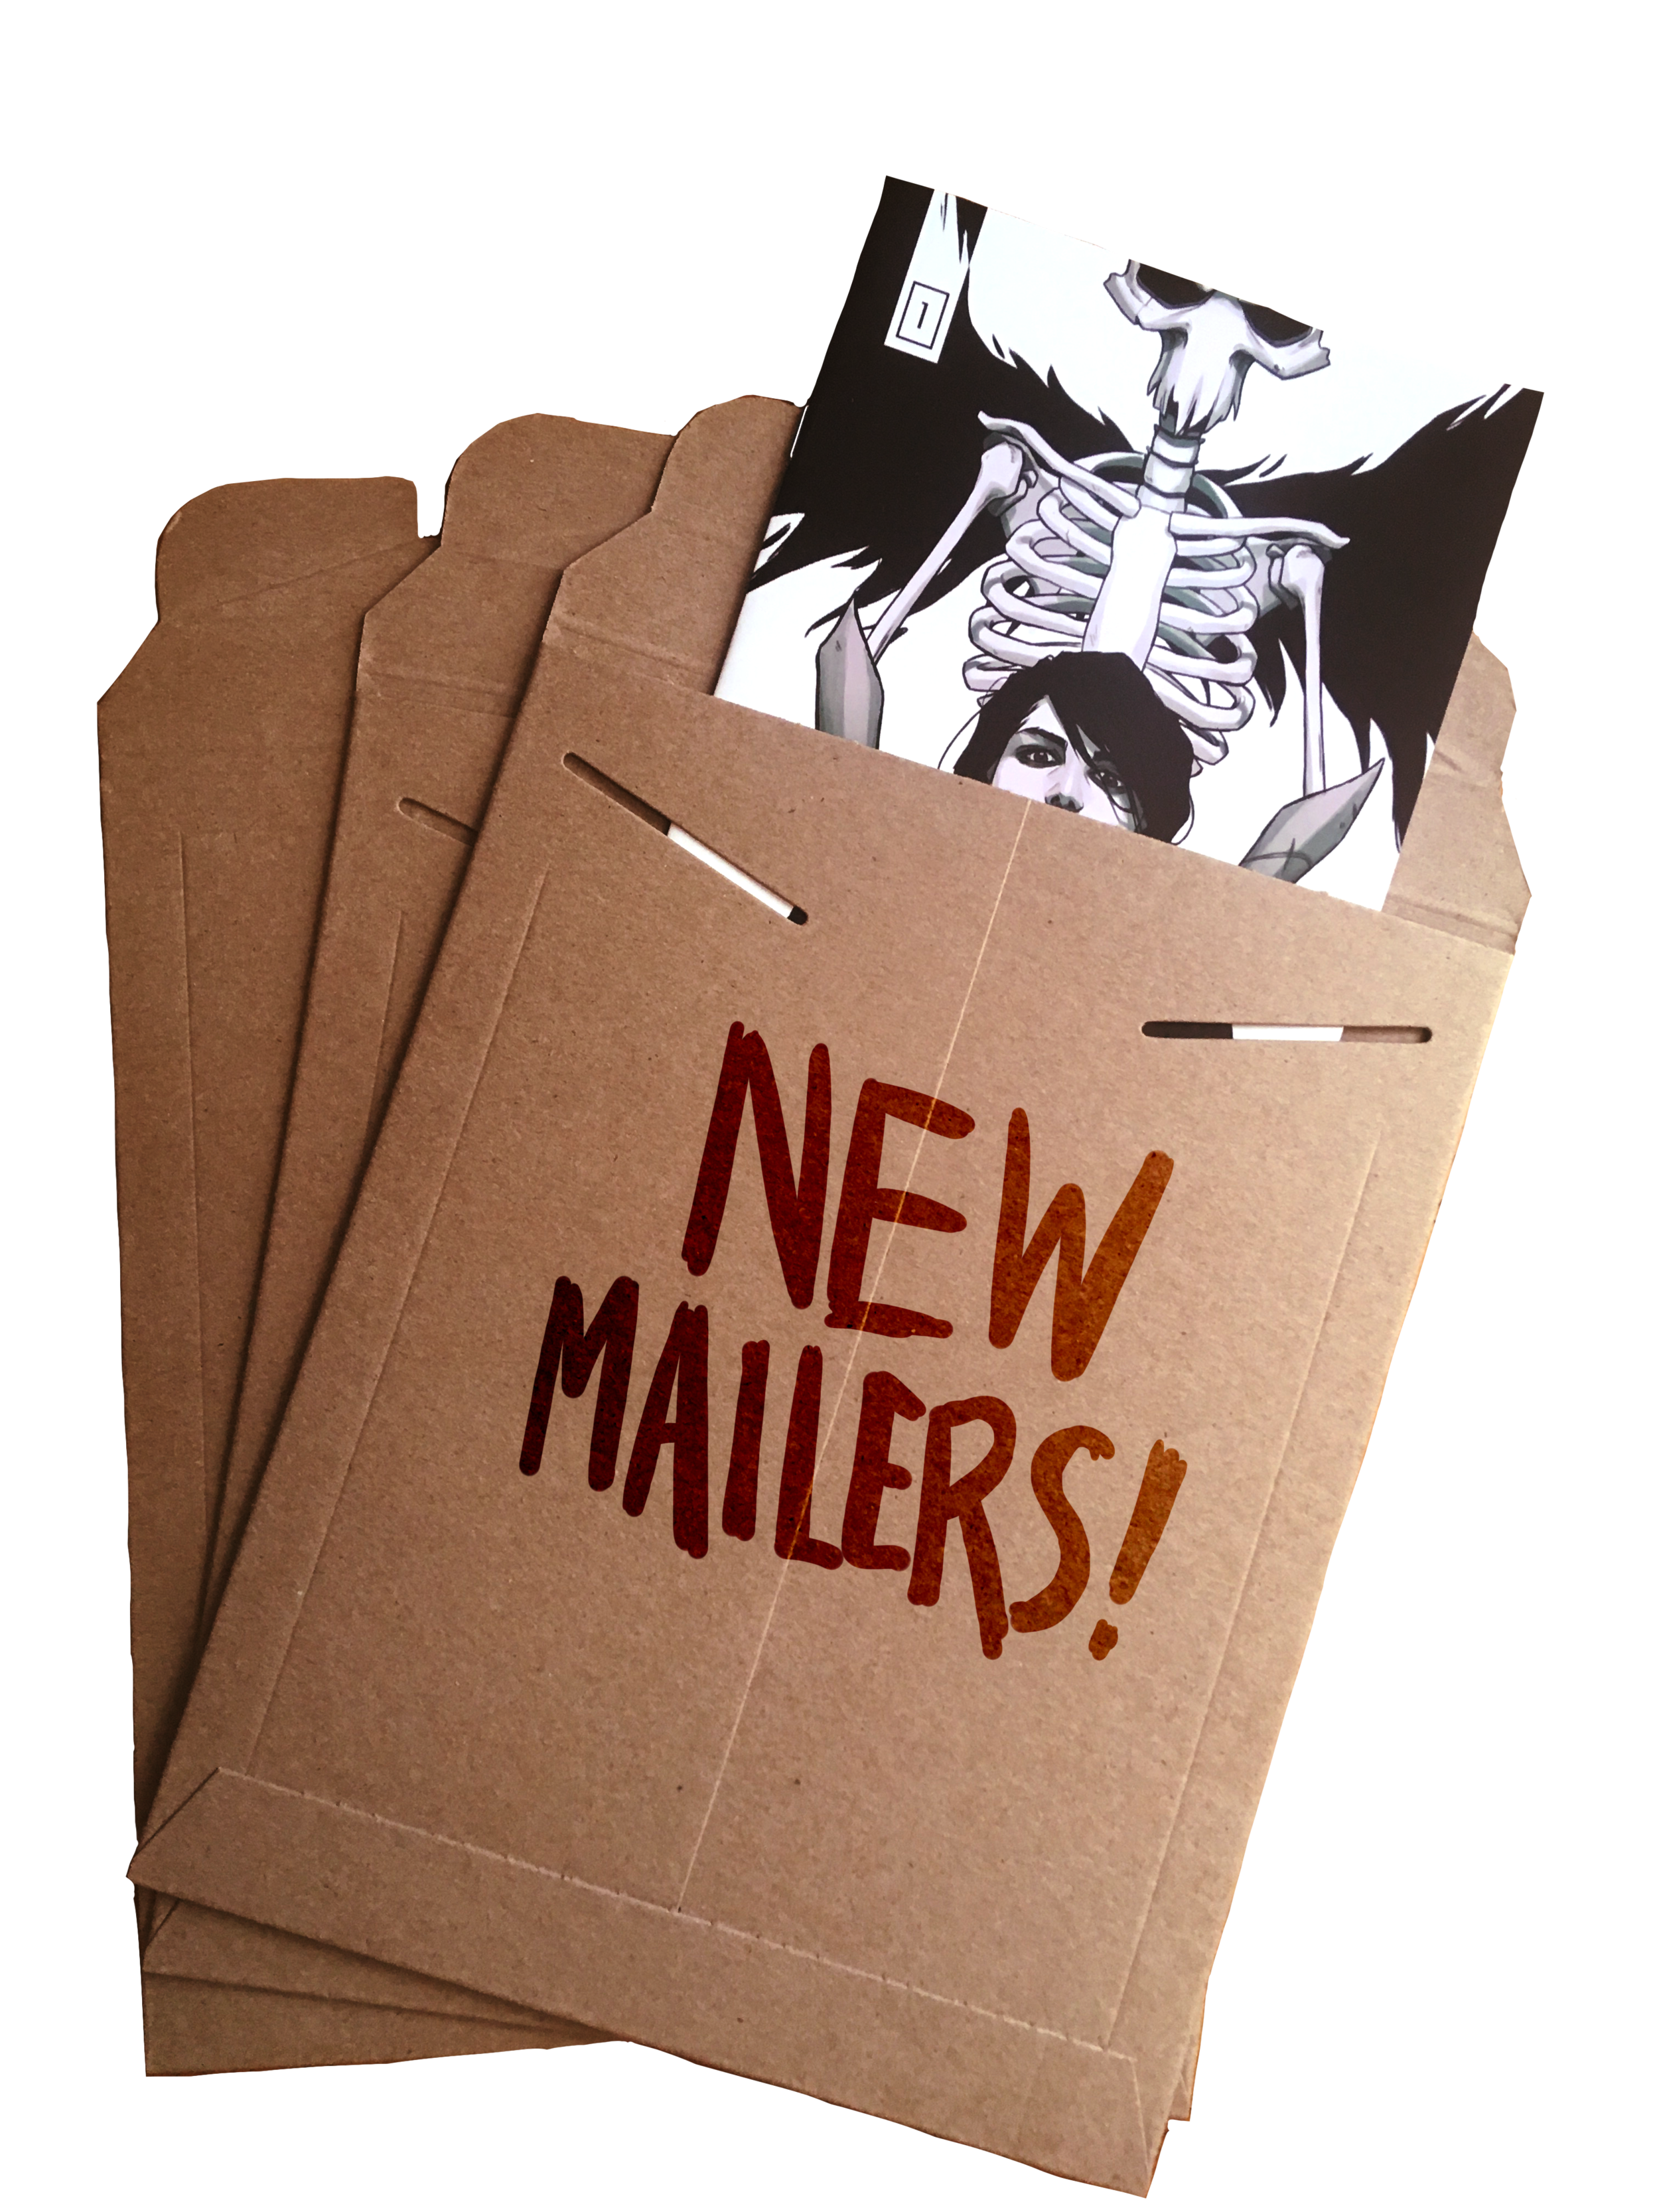 mailers.png